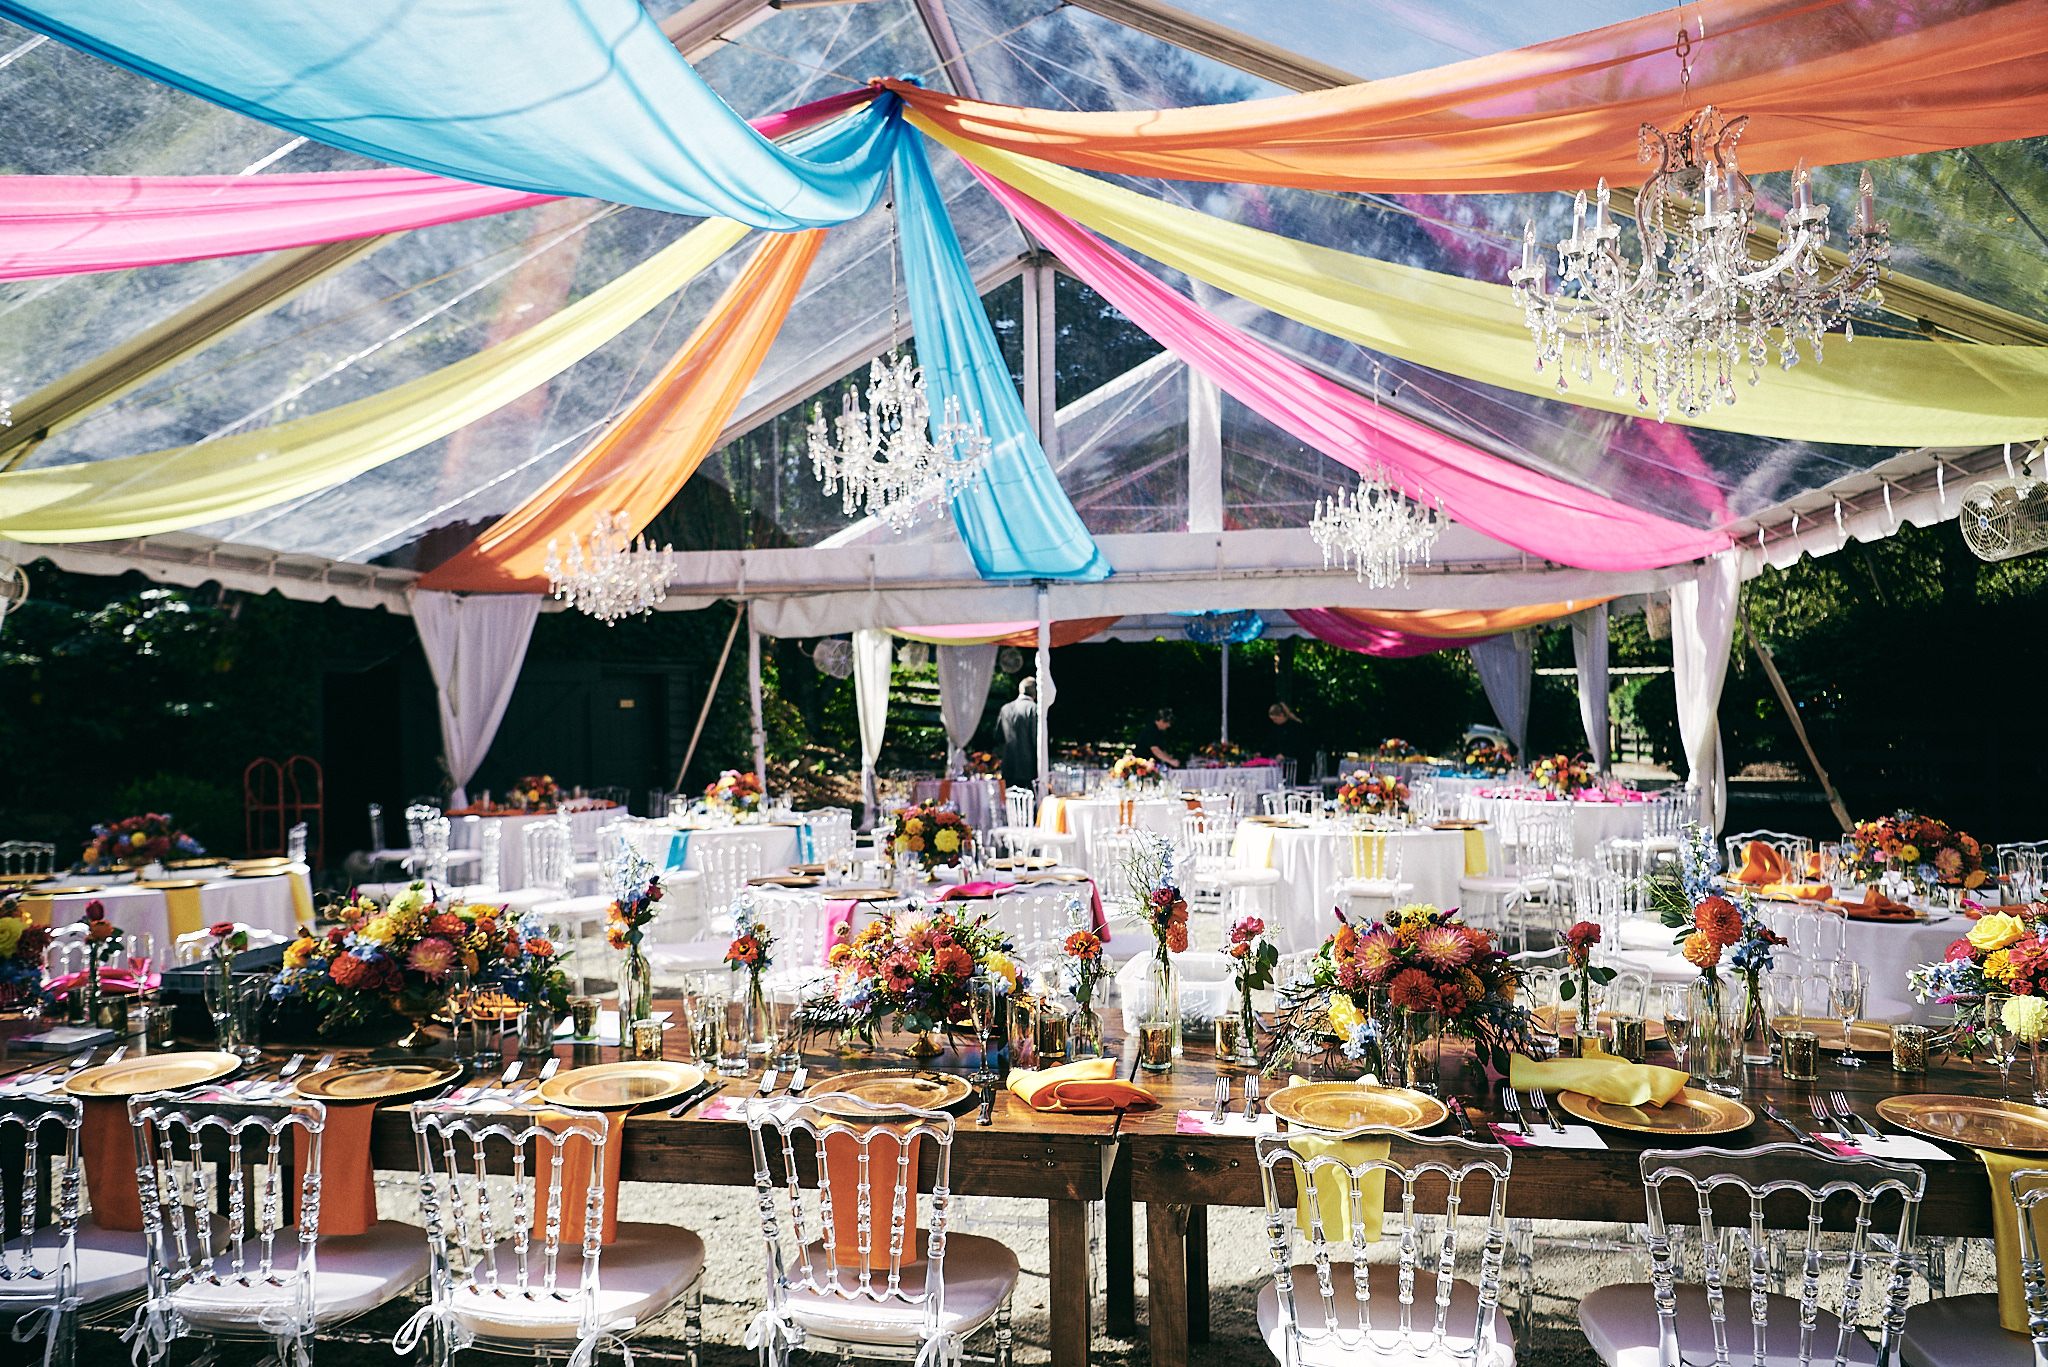 Colorful wedding details